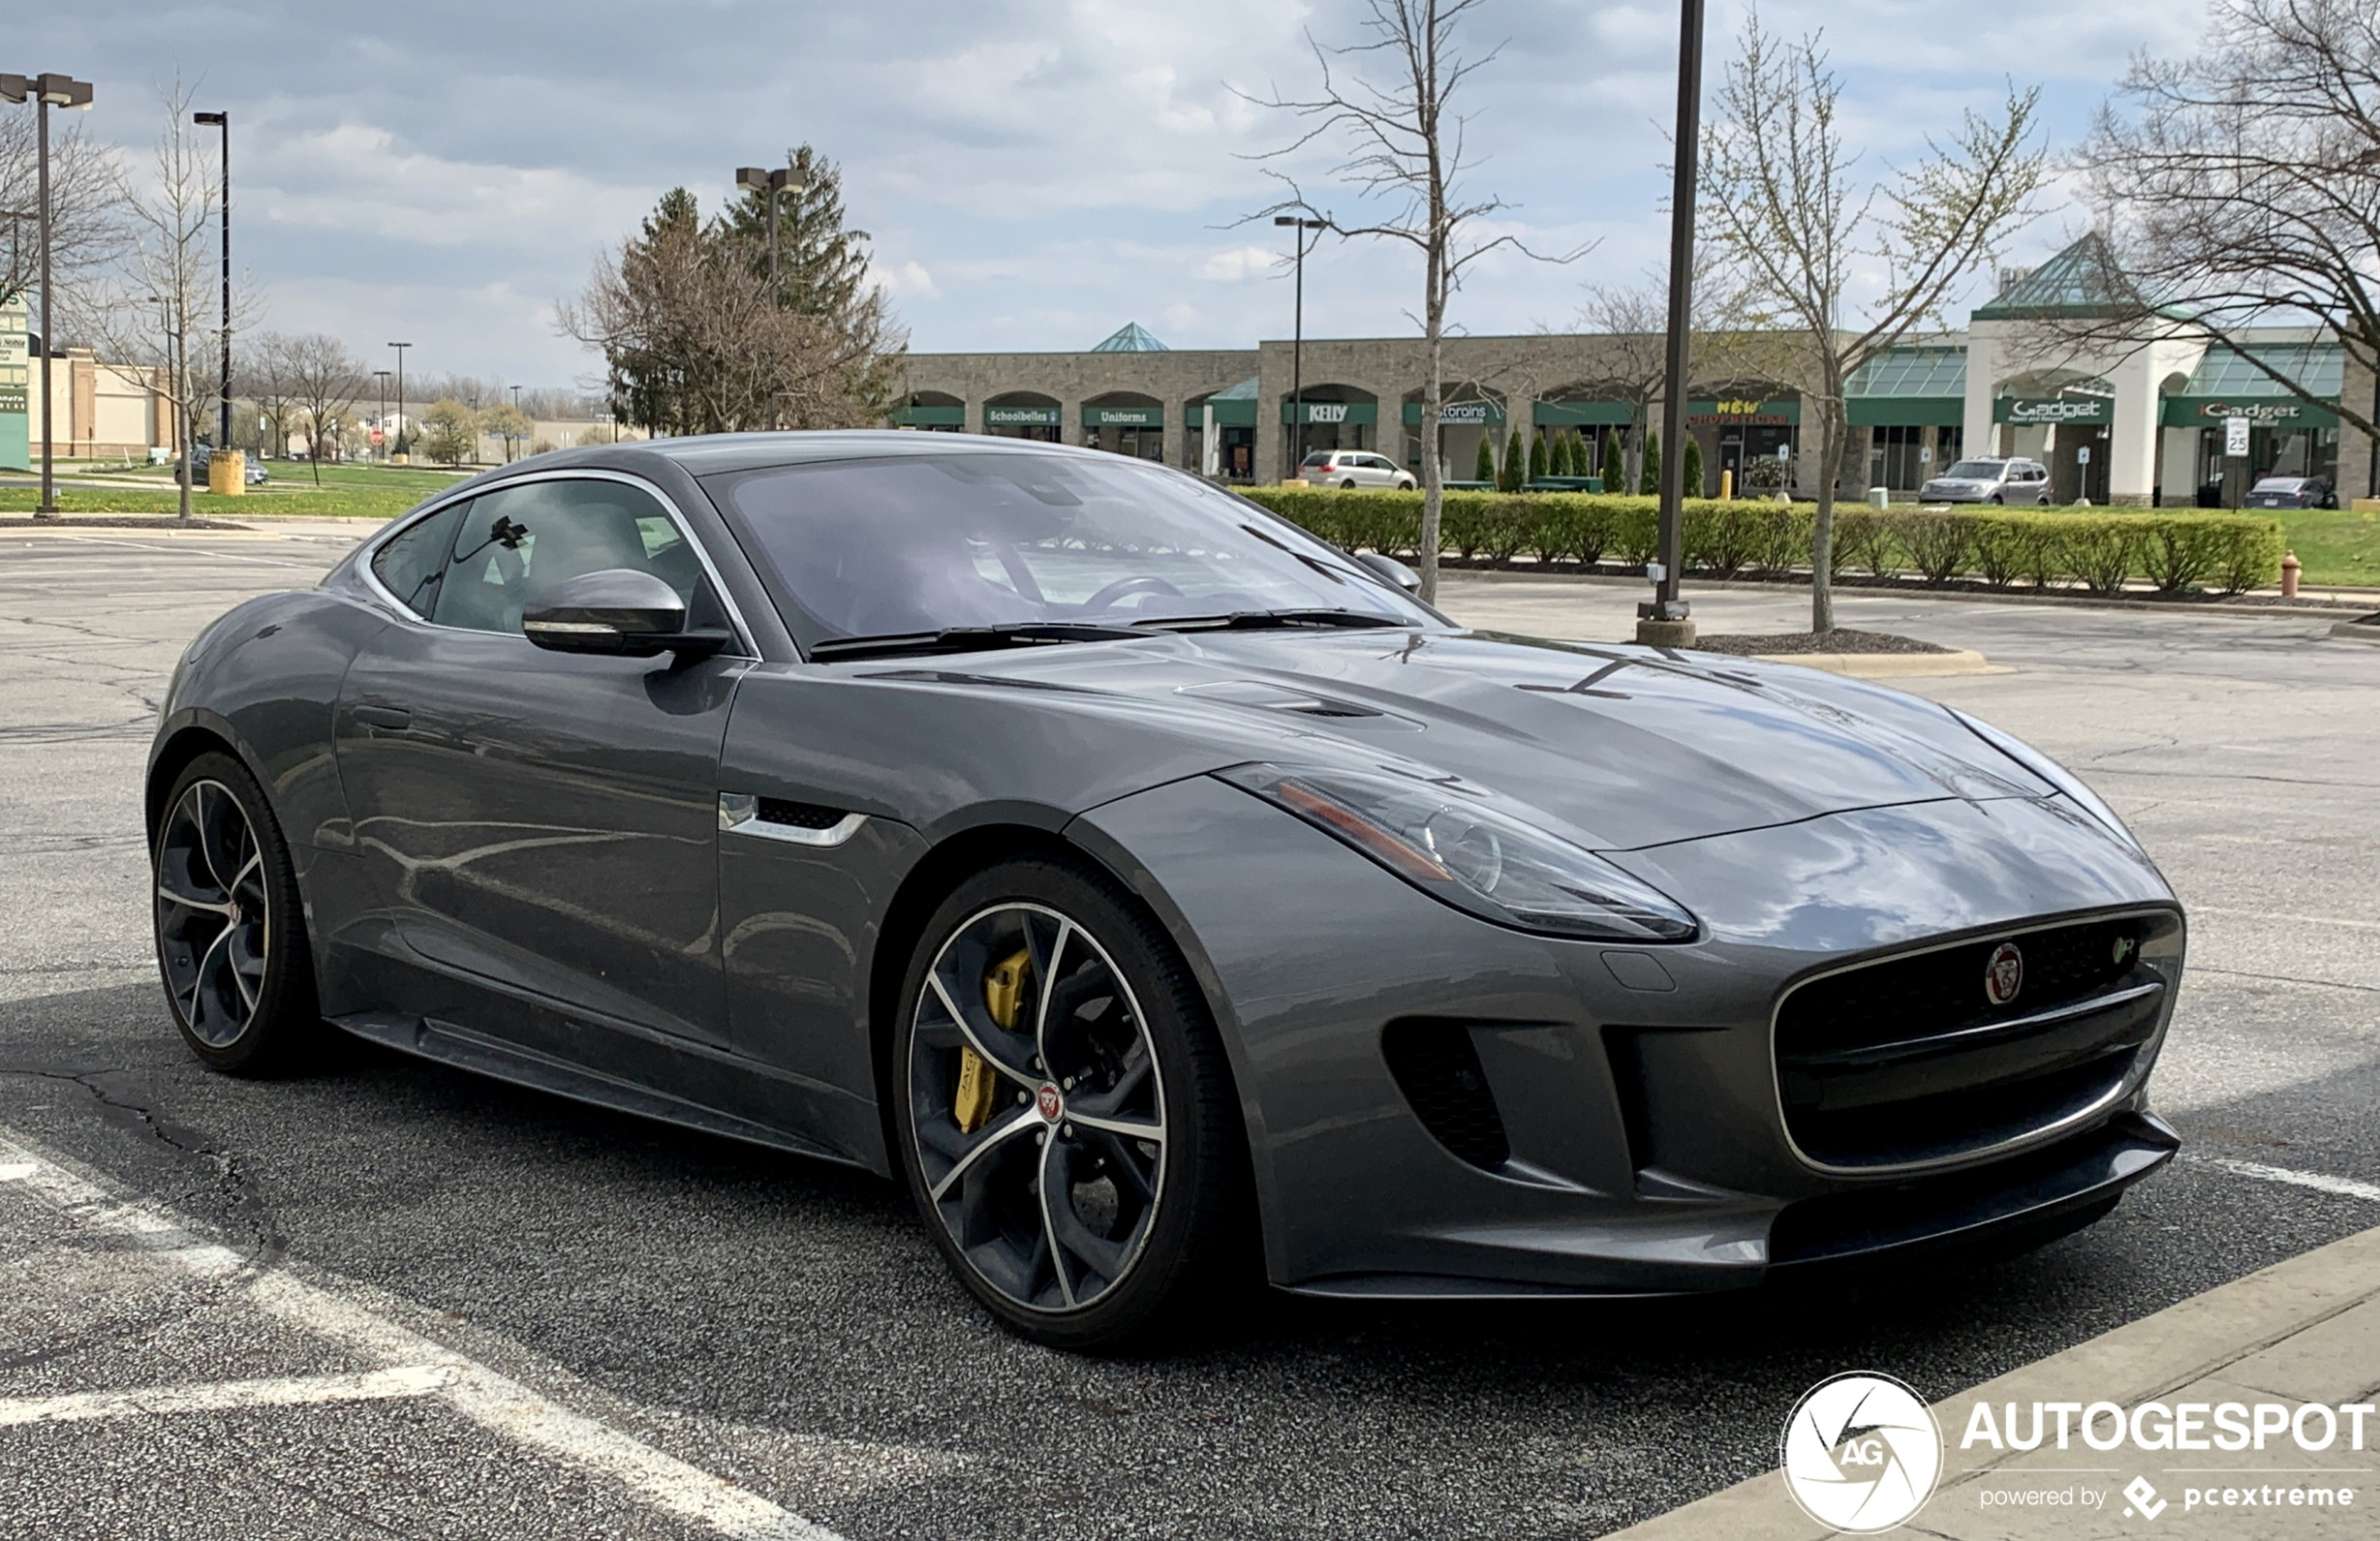 Jaguar F-TYPE R AWD Coupé - 7 April 7 - Autogespot - 2020 jaguar awd